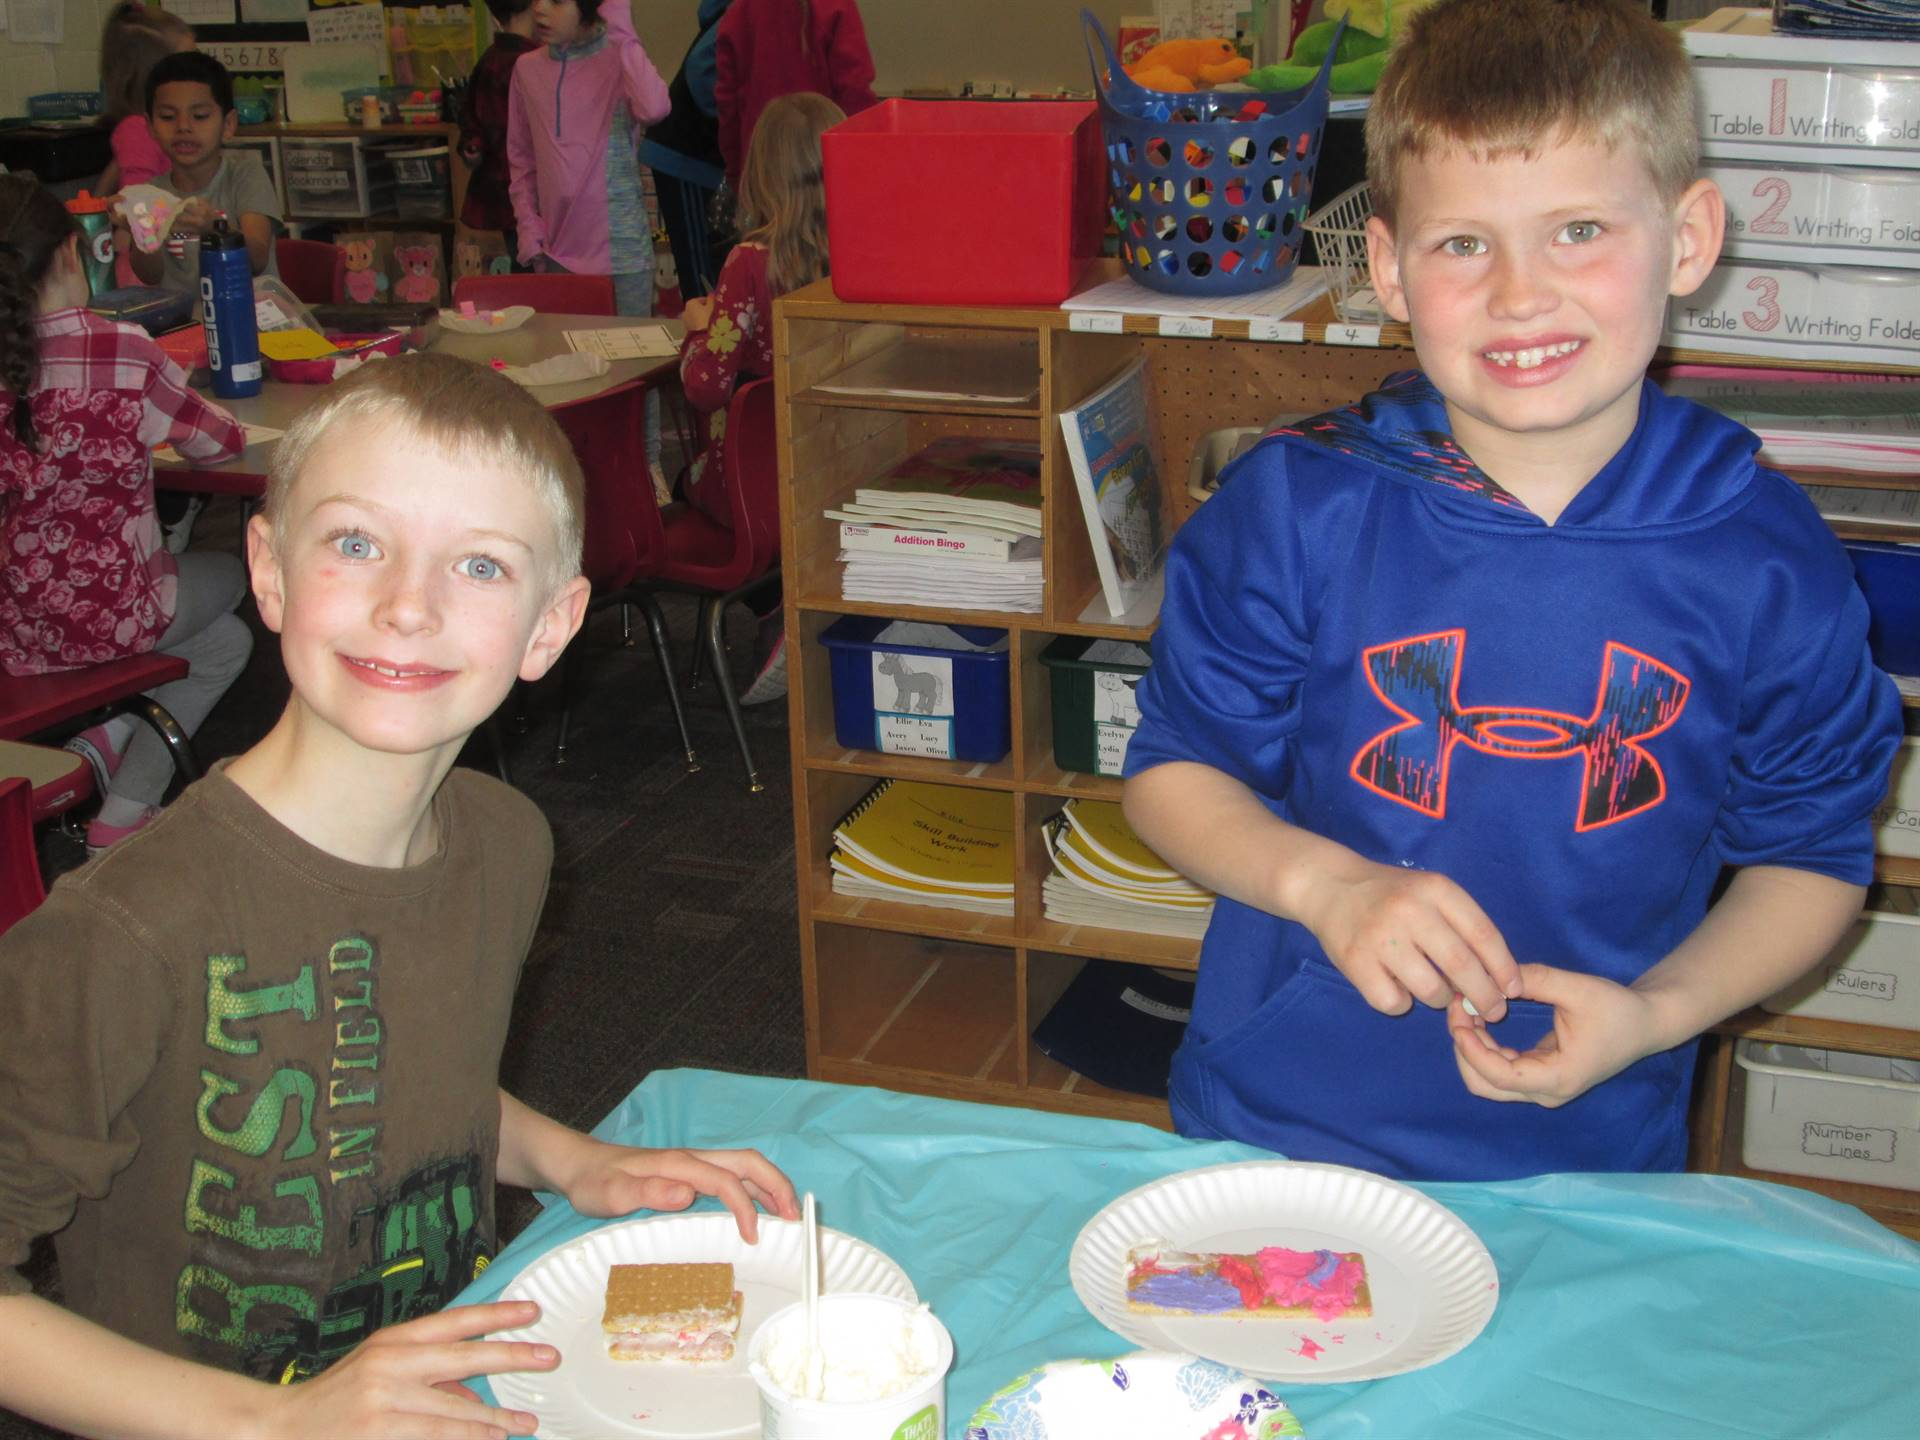 2 boys frosting crackers